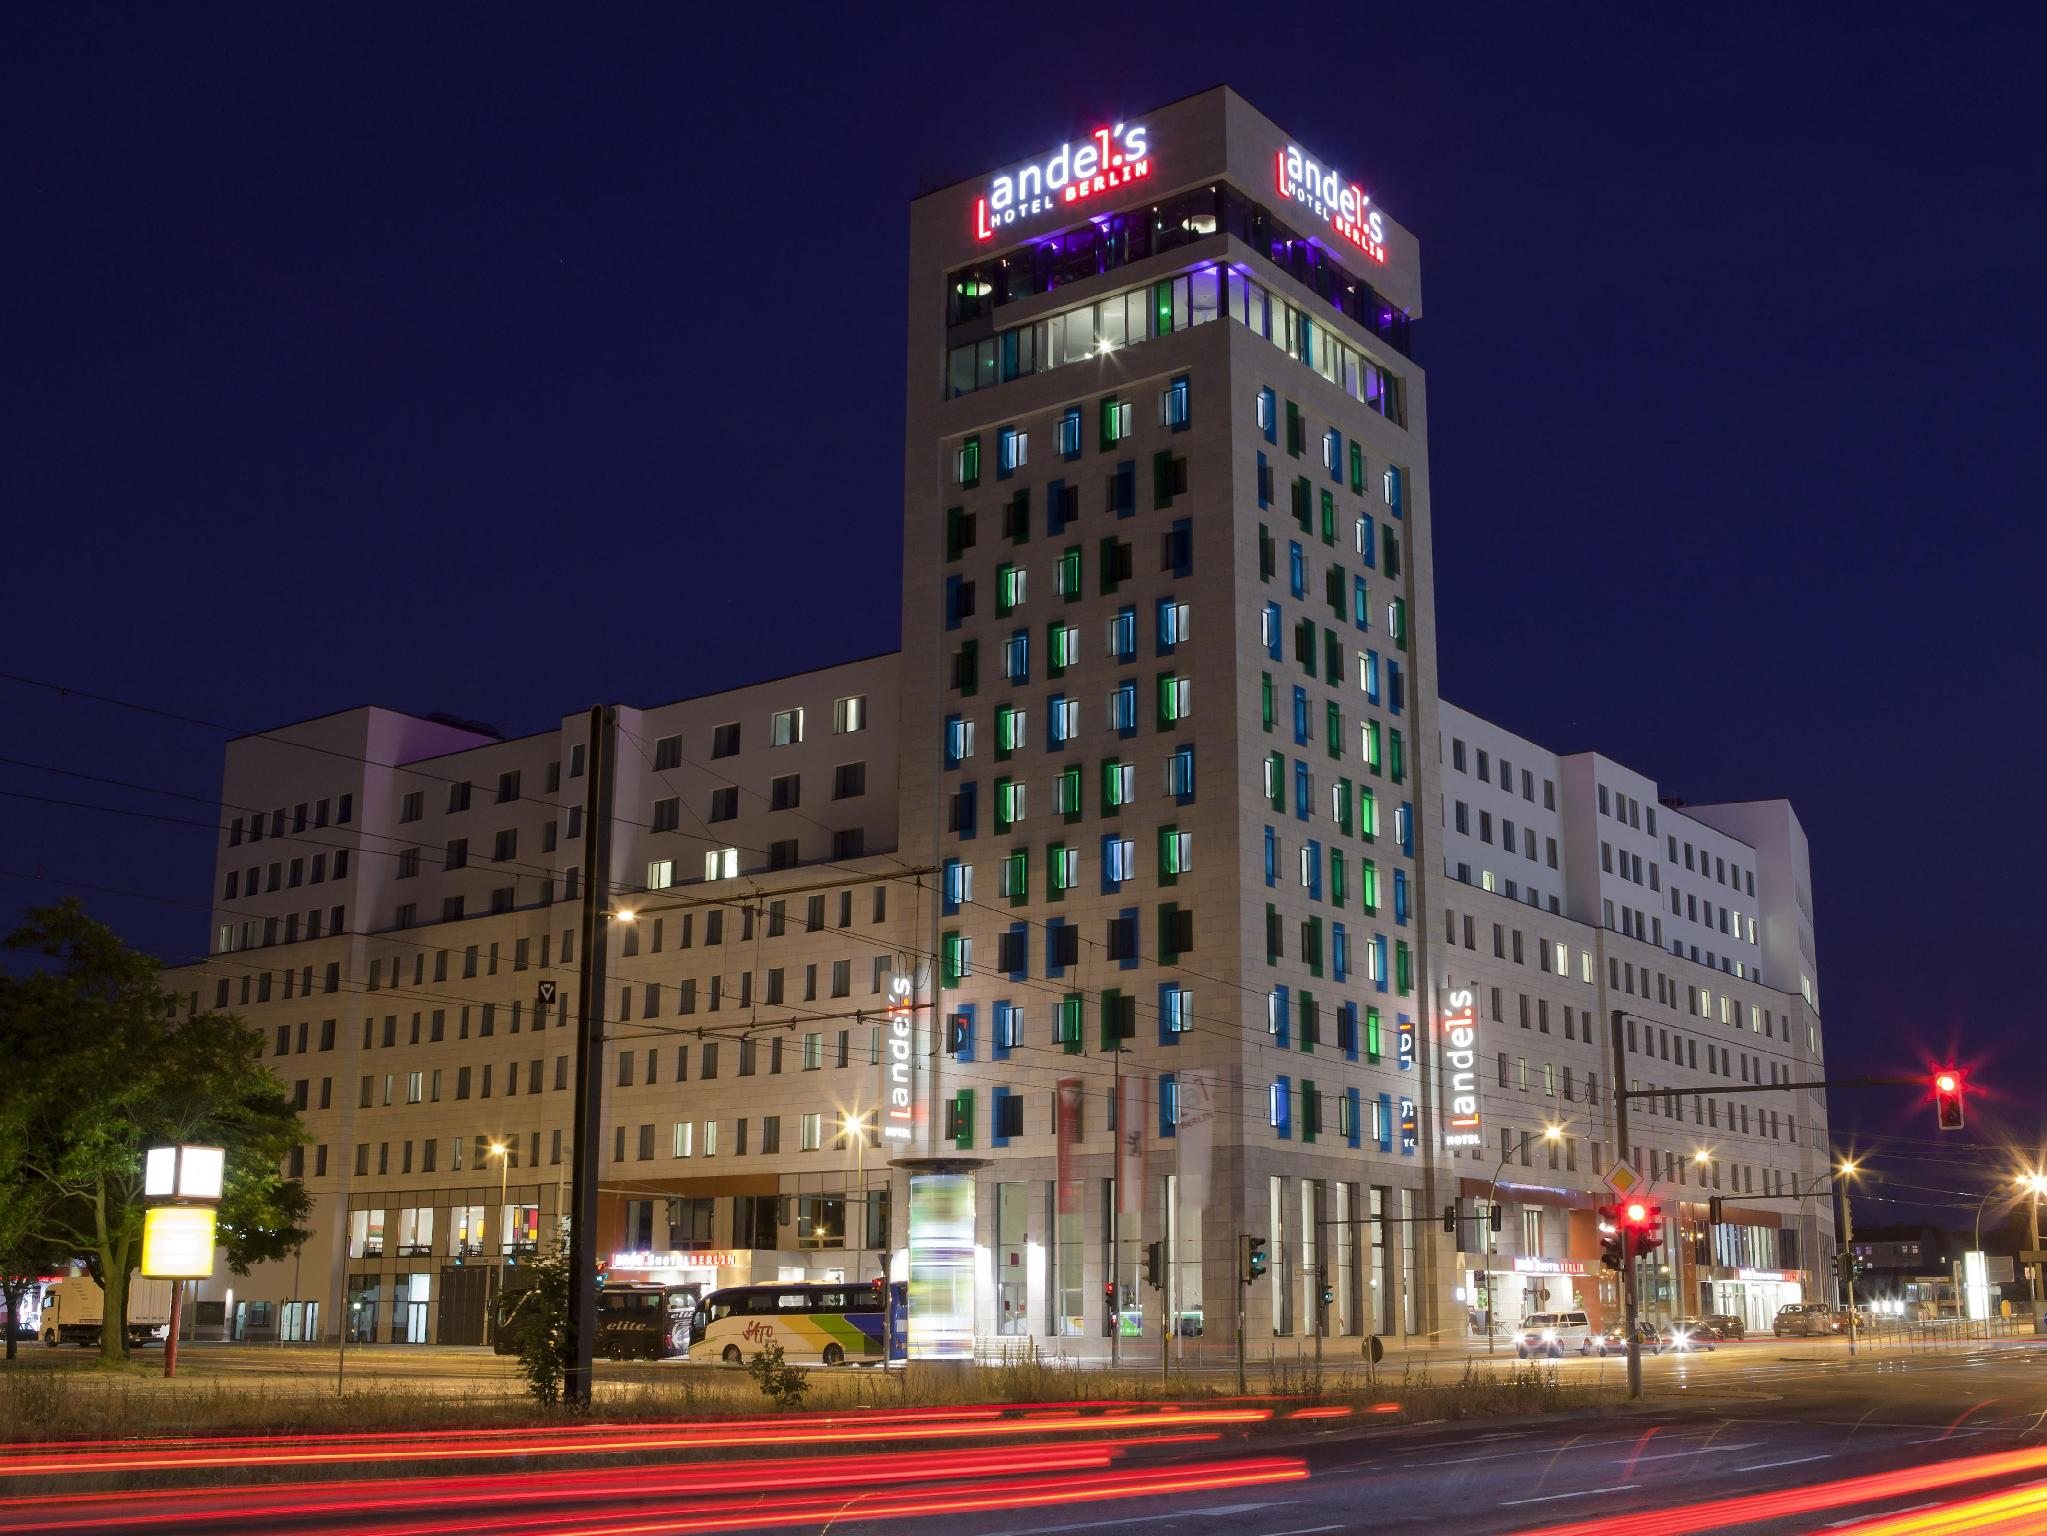 andel's Hotel Berlin, managed by Vienna International Hotels and Resorts ברלין